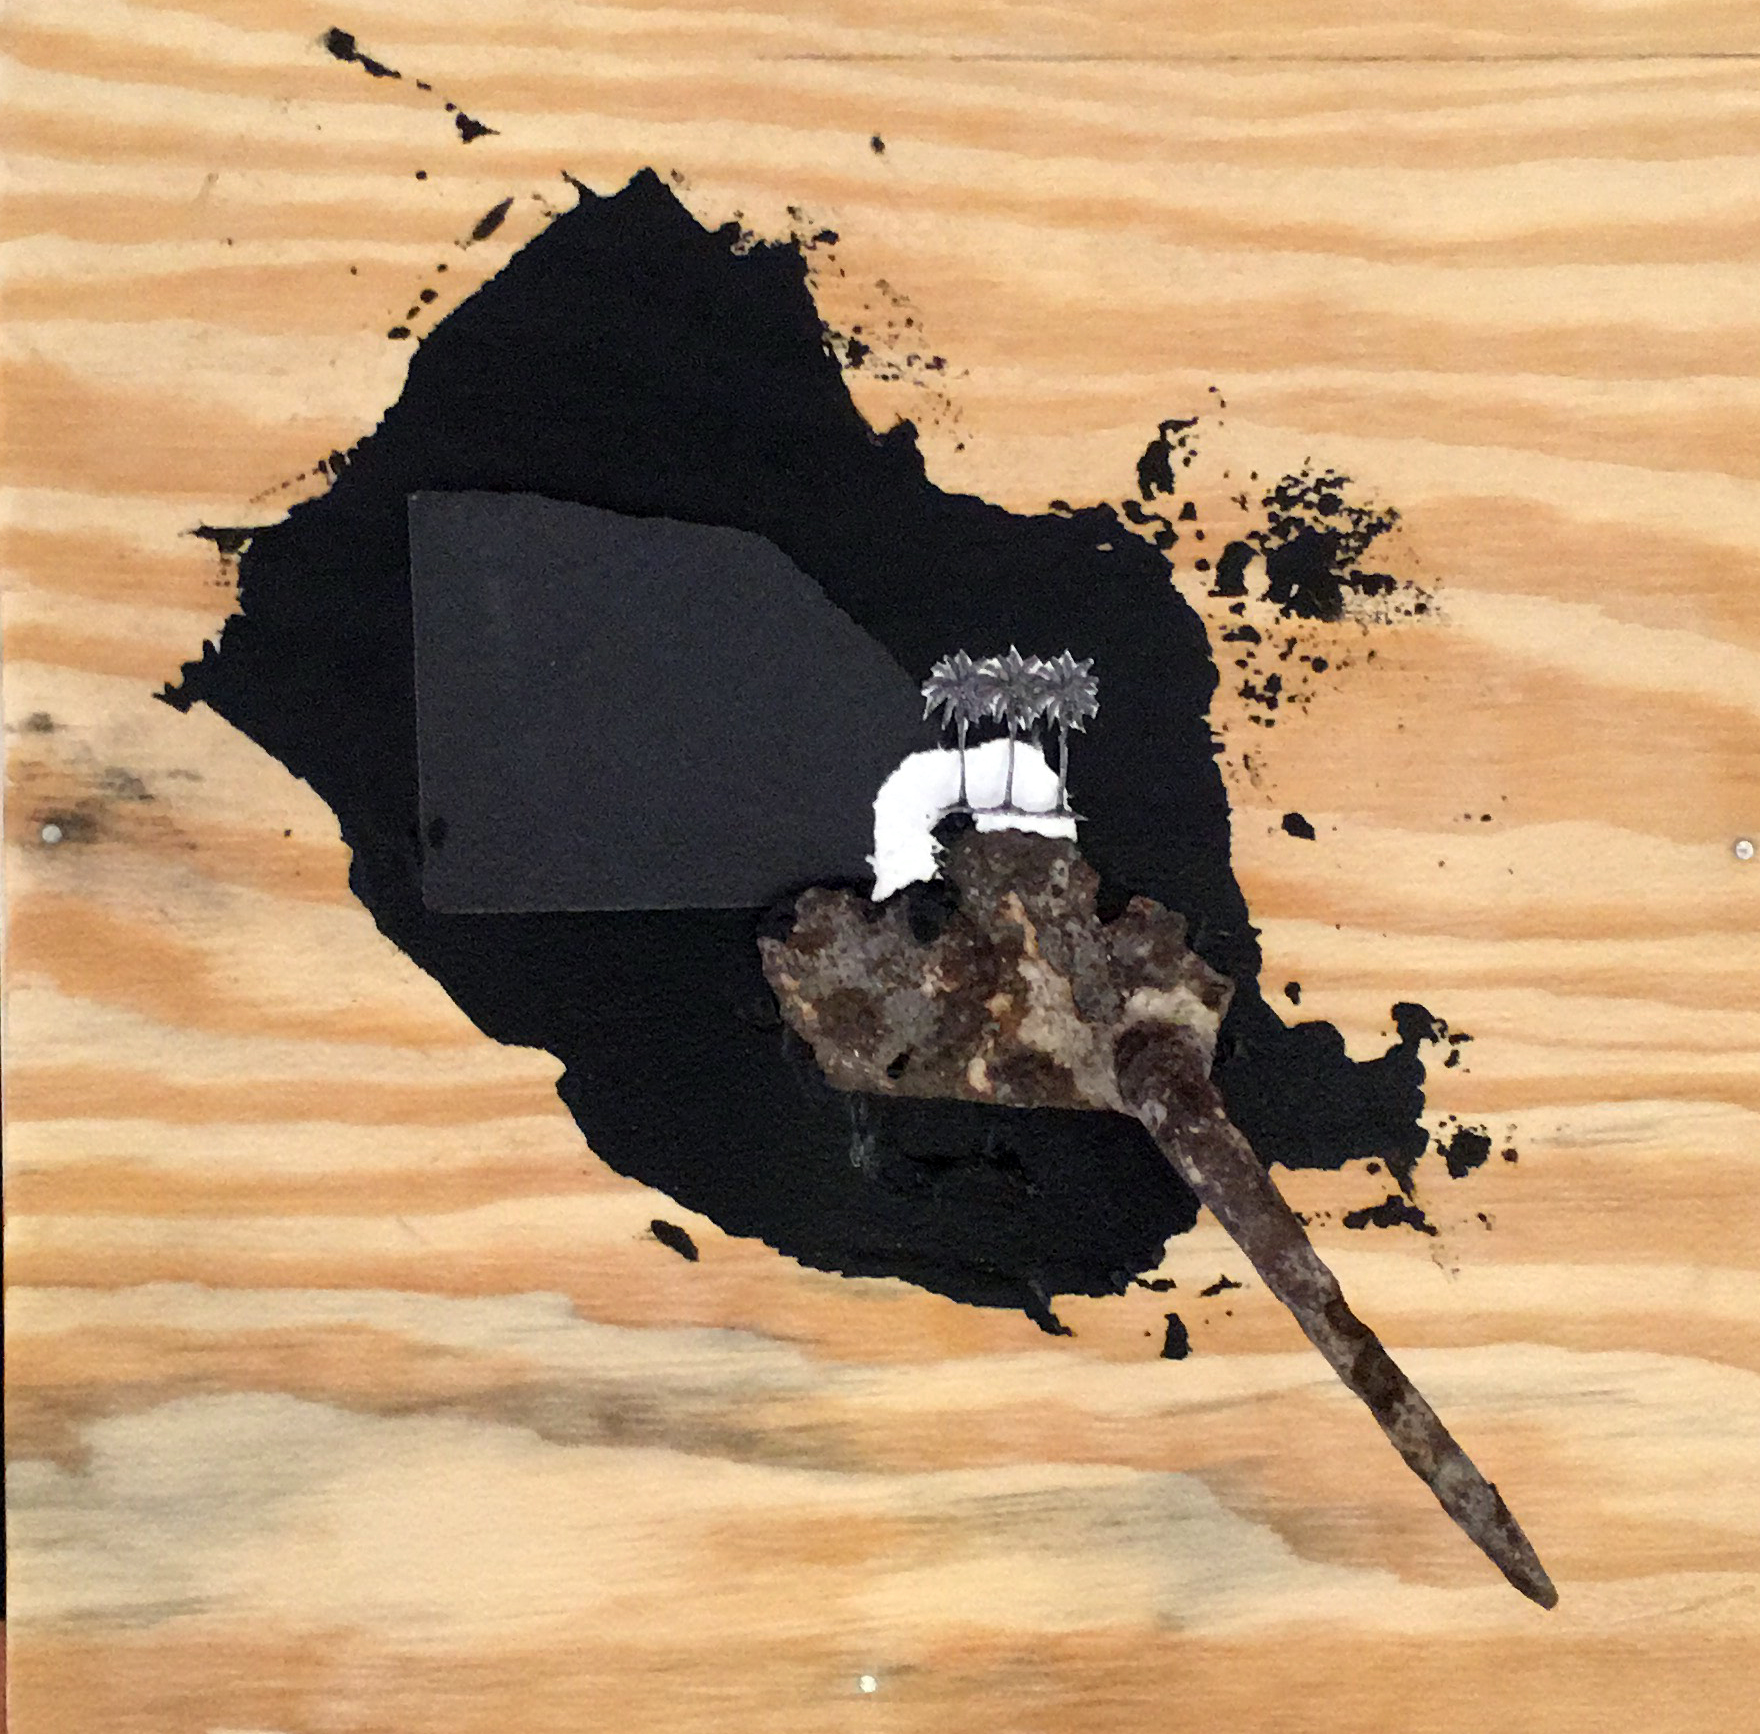 """Black Paradise"" (2017), Jodi Minnis, found object and image with acrylic paint, 11"" x 11""."